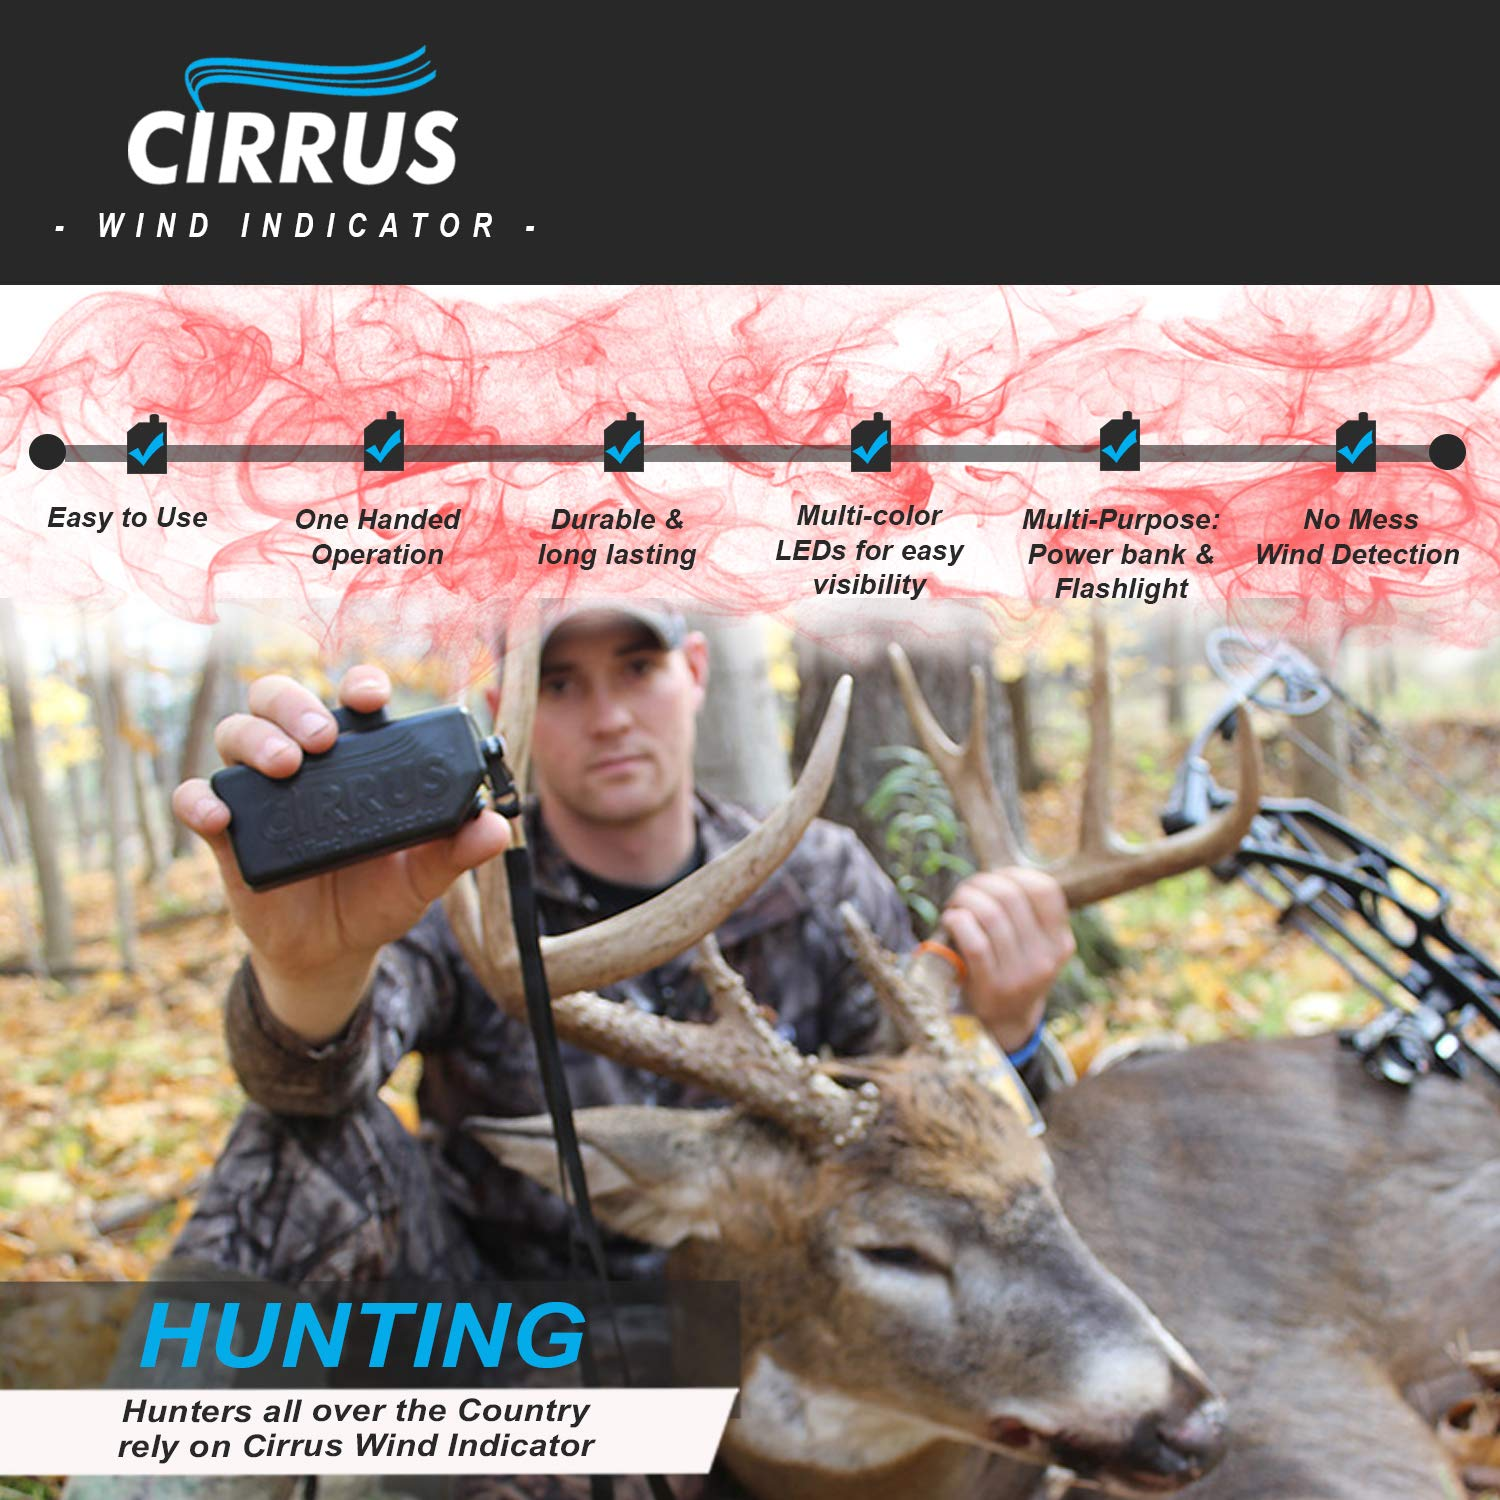 Cirrus Wind Indicator for Hunting - The Perfect Wind Checker Alternative to Messy Powder by Cirrus (Image #3)